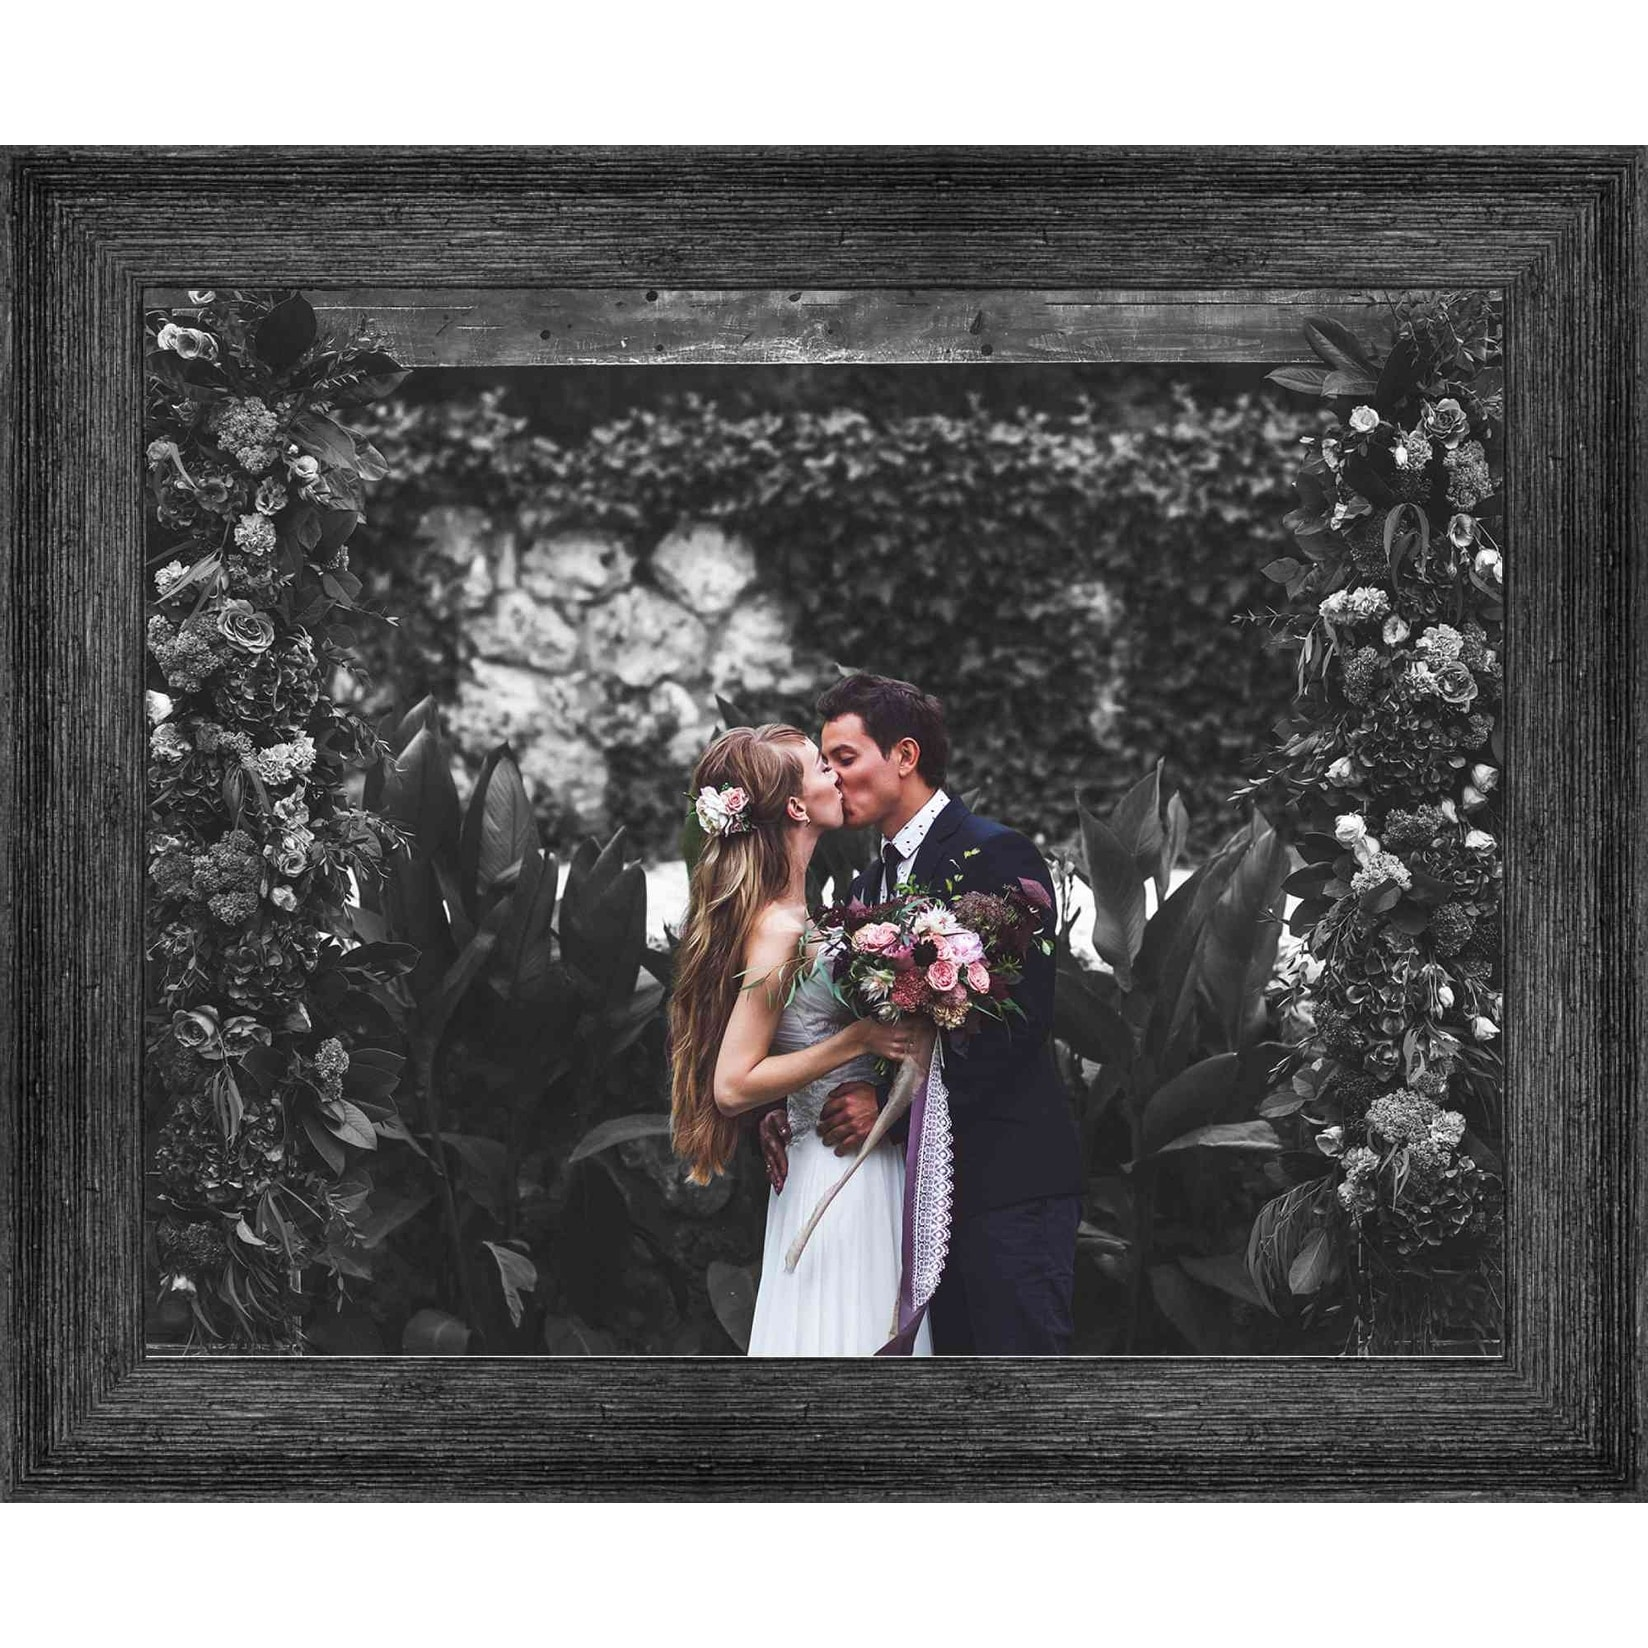 15x28 Black Wood Picture Frame With Acrylic Front and Foam Board Backing